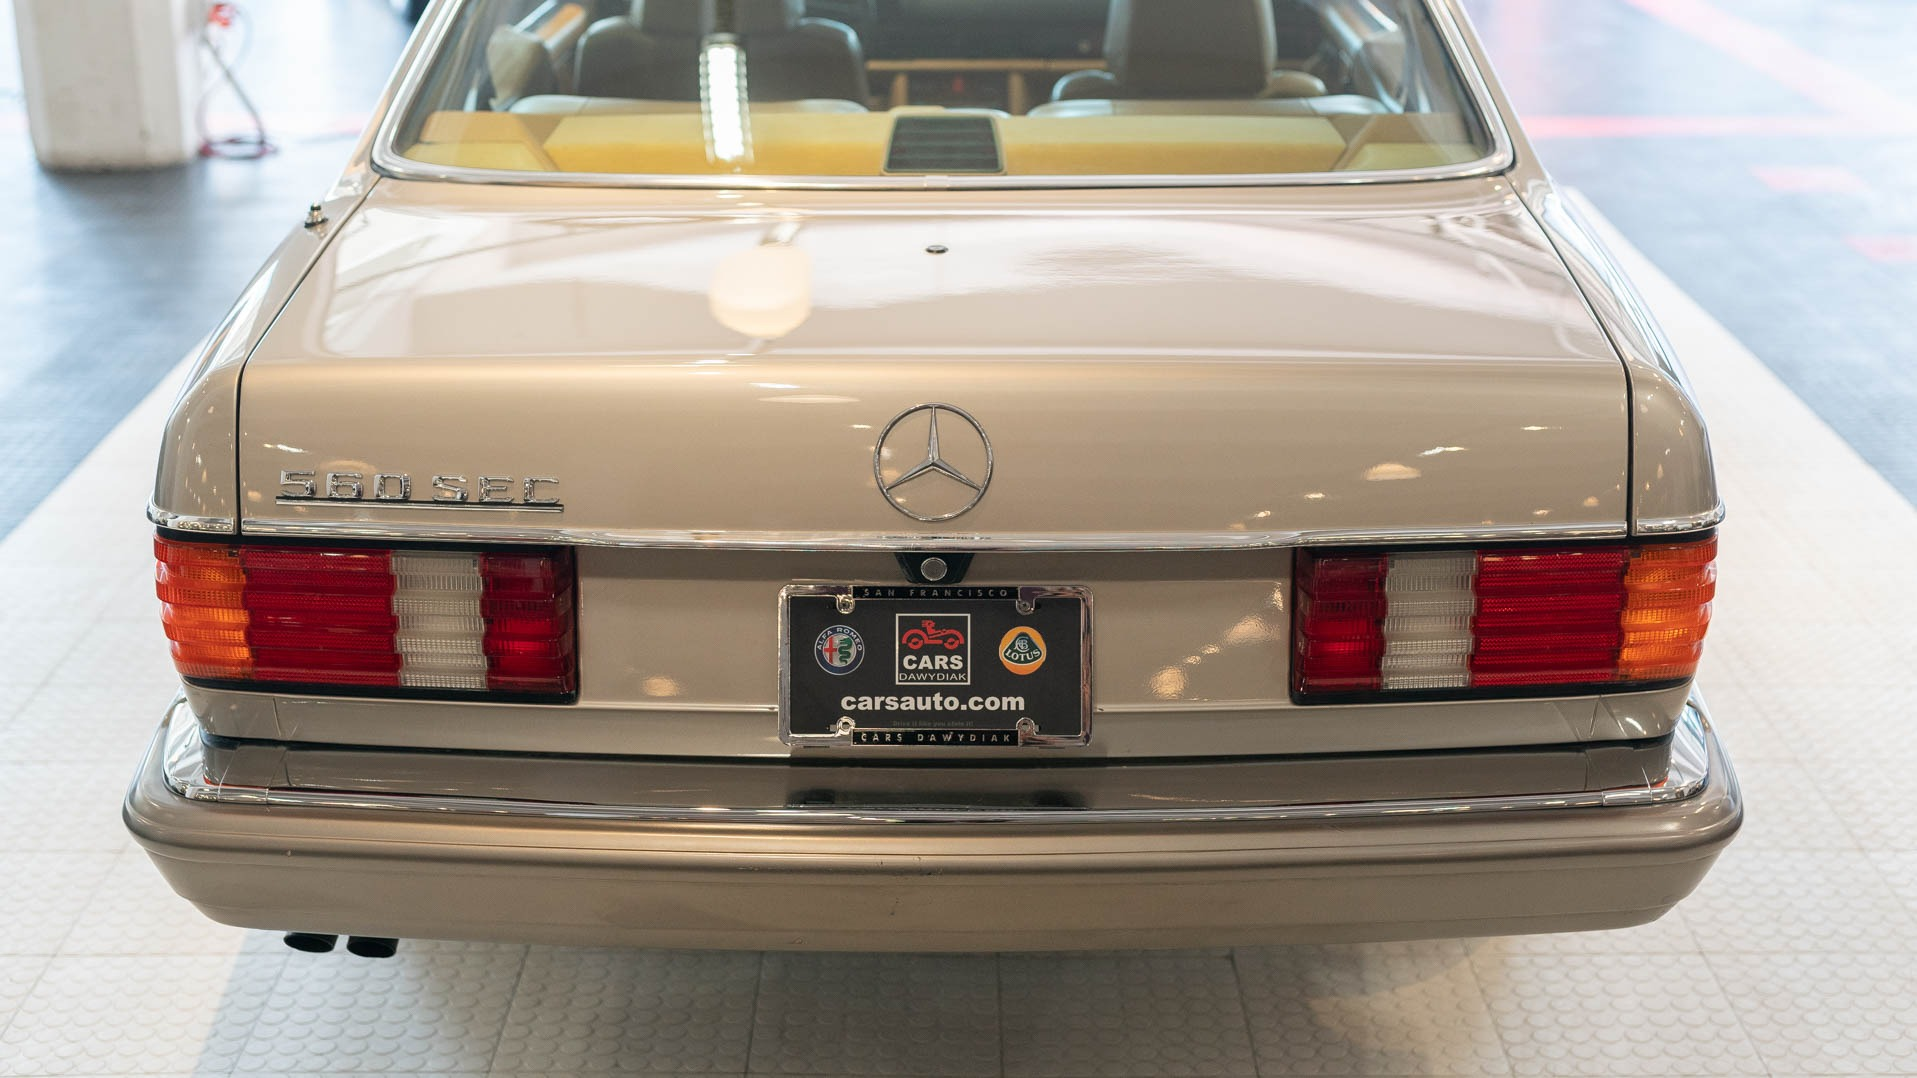 Used 1988 Mercedes-Benz 560-Class 560 SEC For Sale ($21,900) | Cars